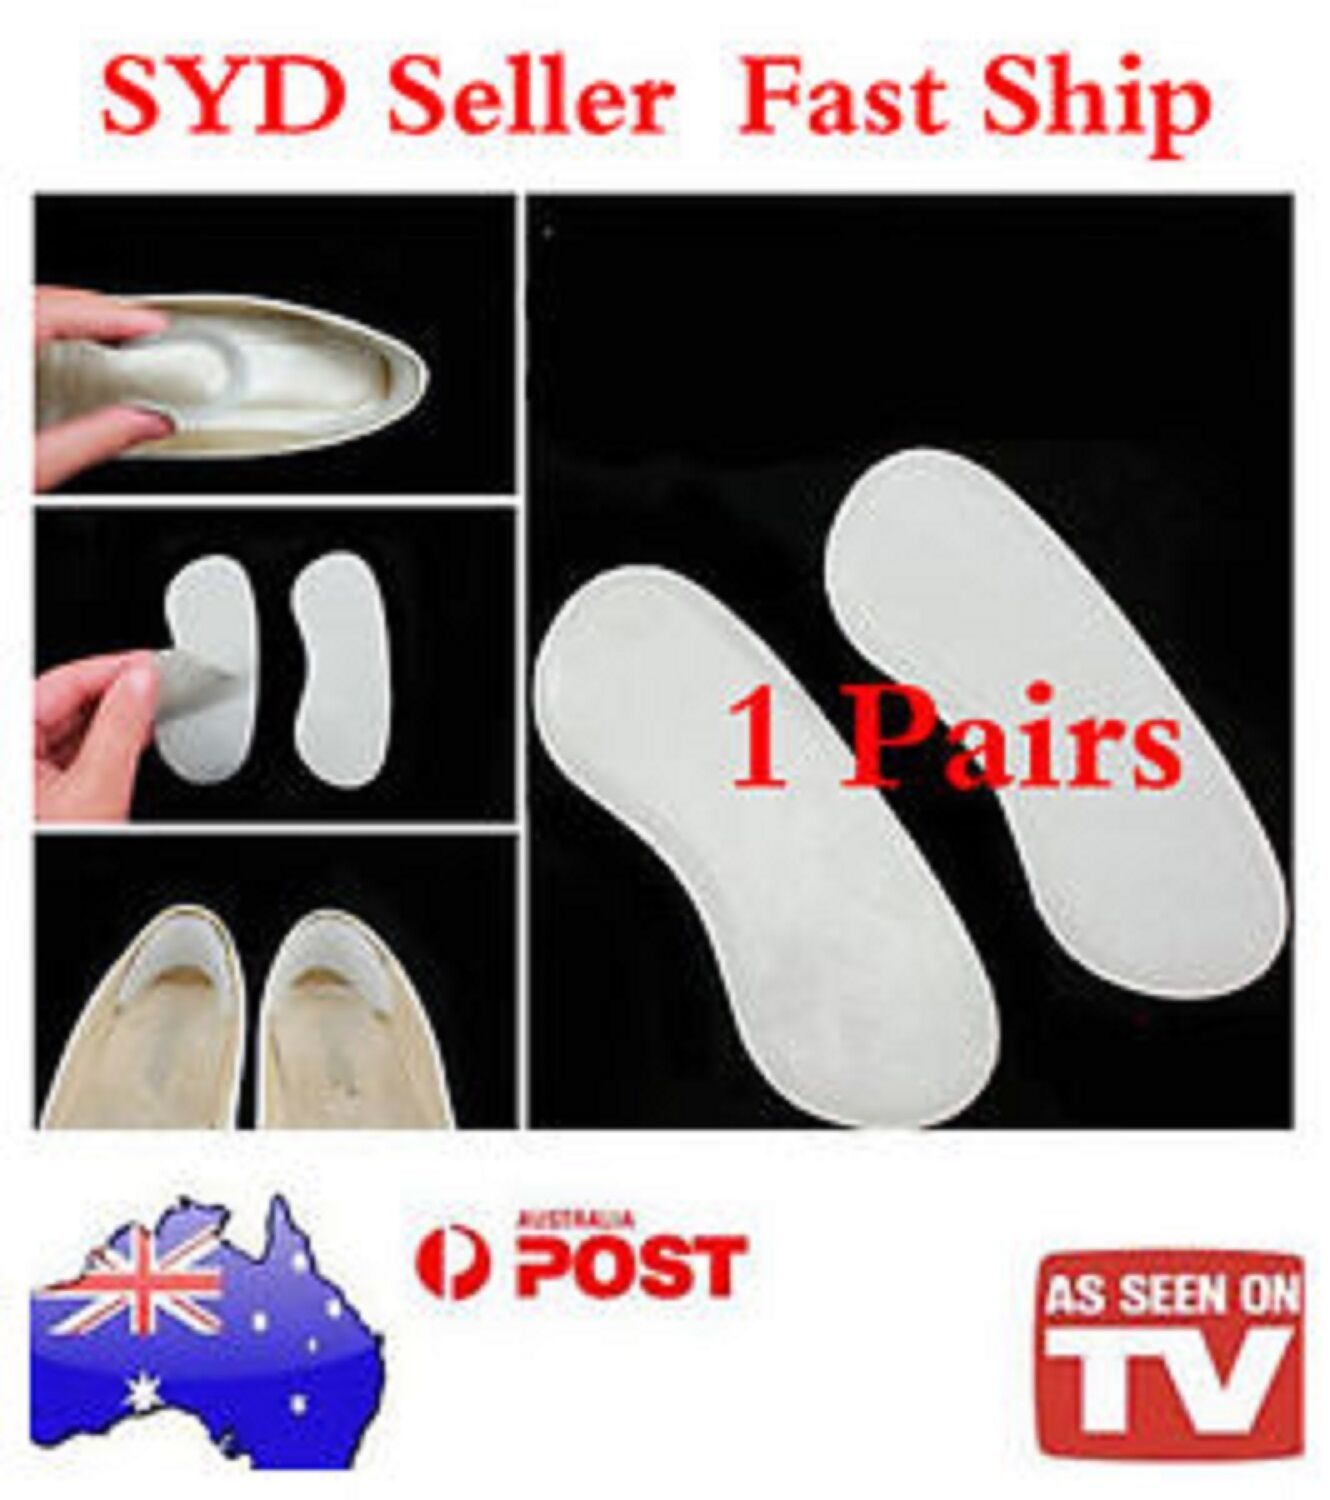 1 pairs SILICONE HIGH-HEEL cushions, Shoes Shoe-Pad Pad, insoles, Heel Insoles Shoe-Pad Shoes 7d950d